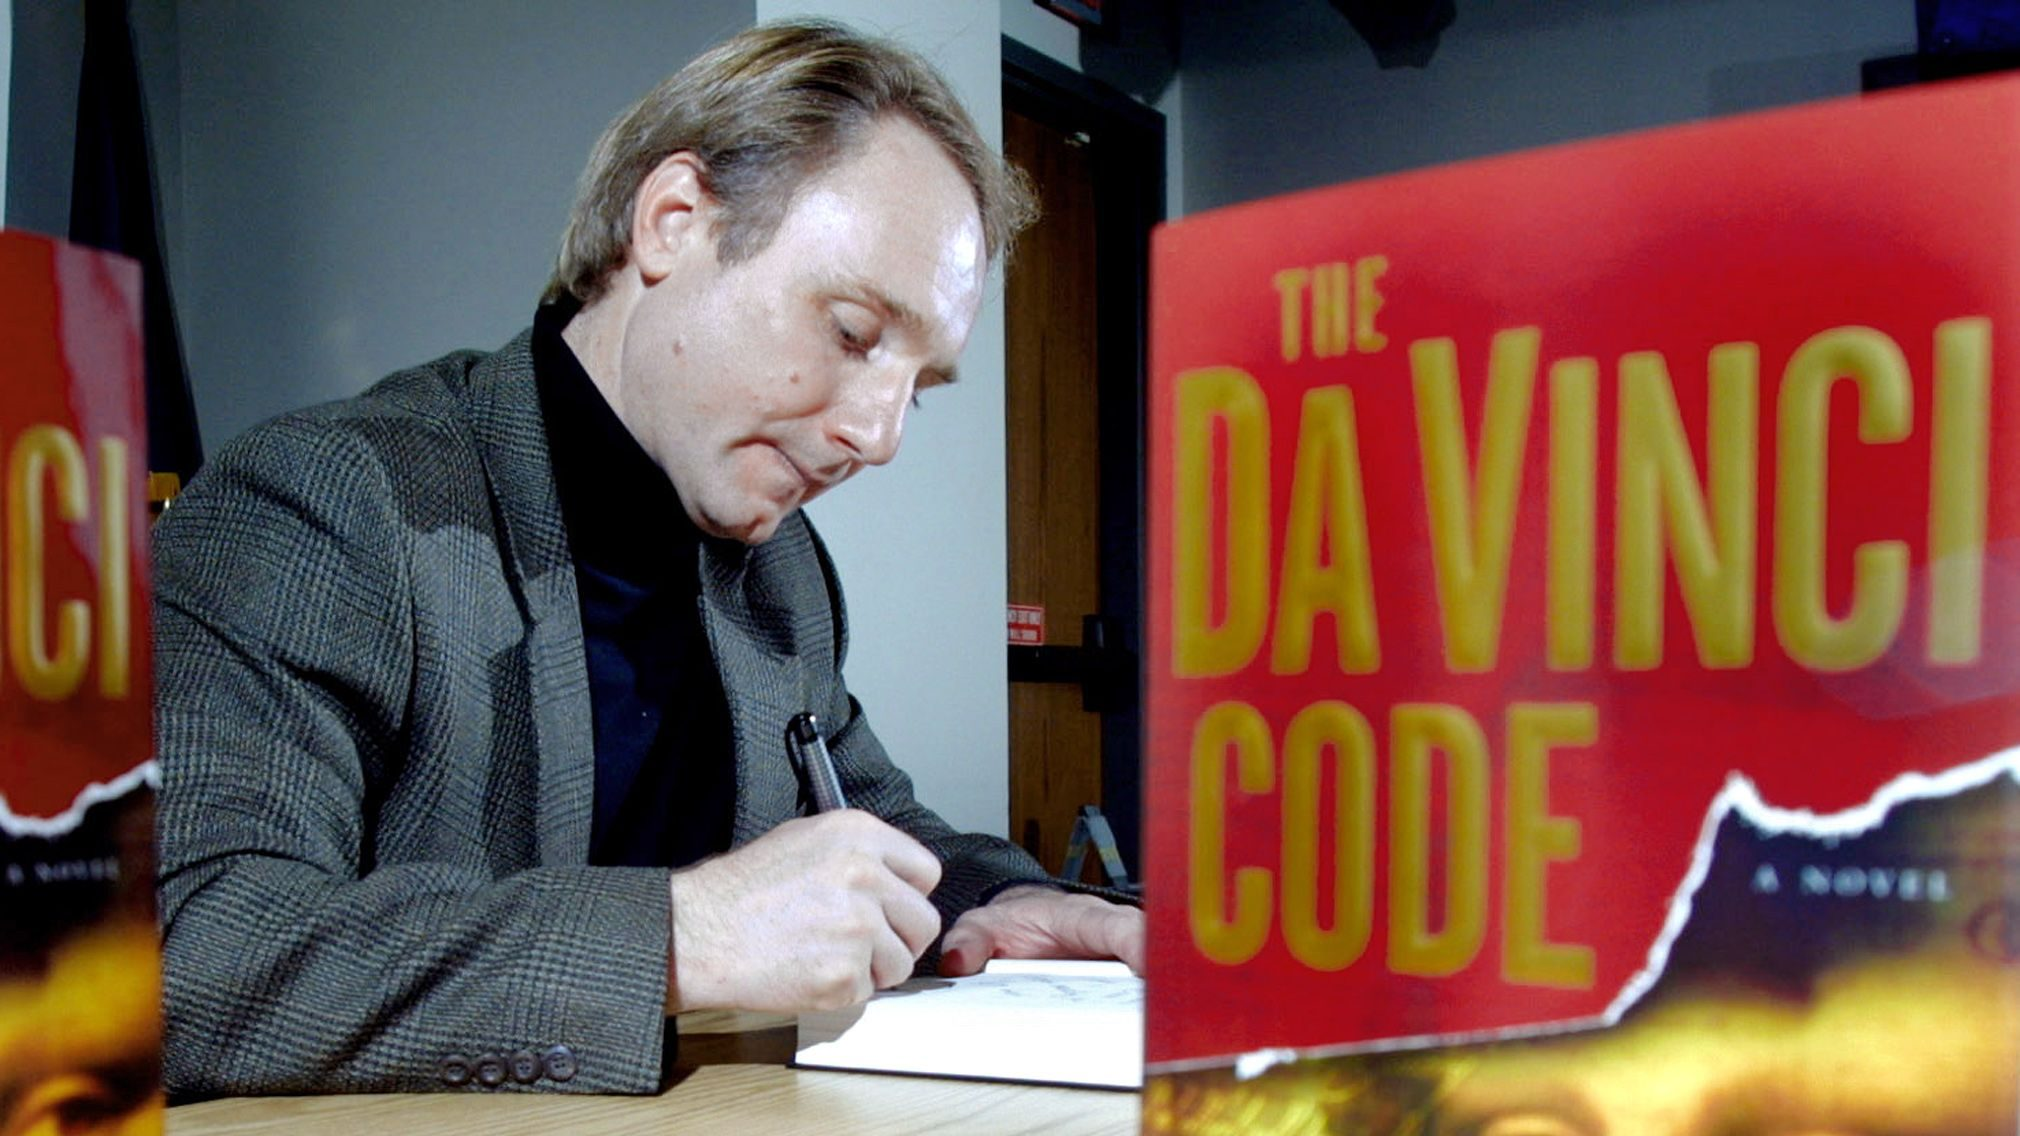 Dan Brown's top 10 tips on how to write a bestselling thriller